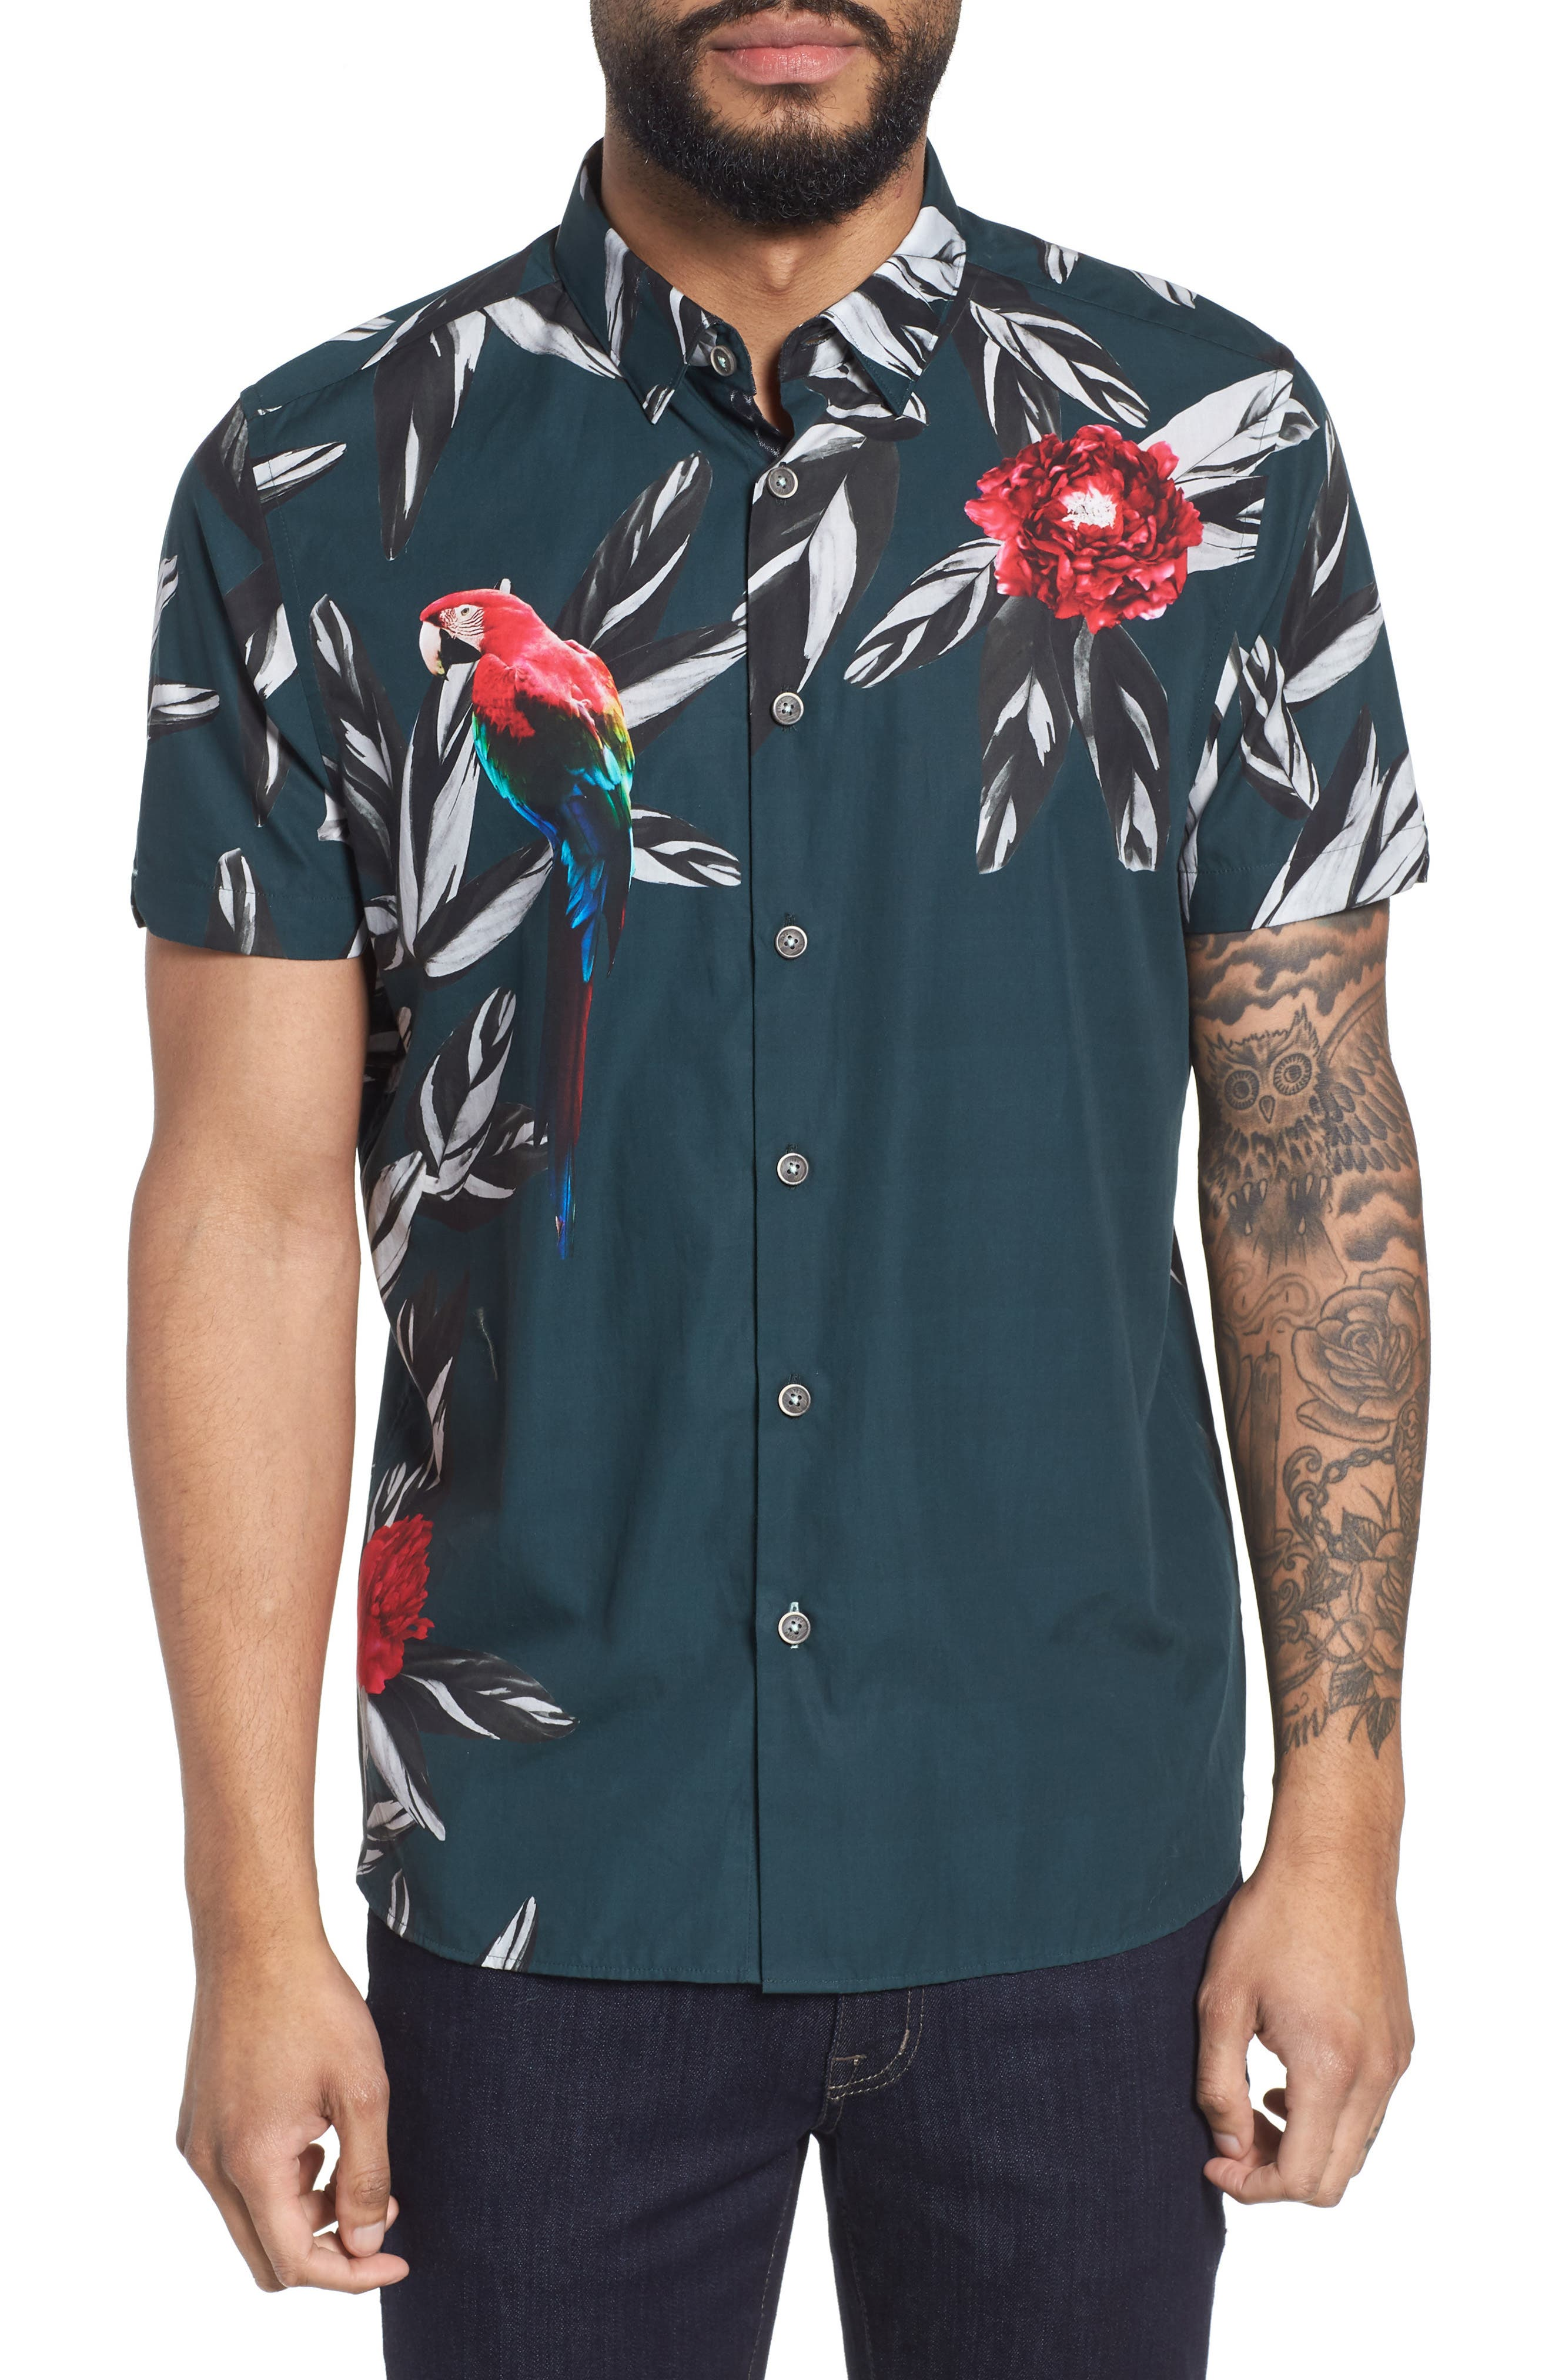 Parrot Print Short Sleeve Sport Shirt,                         Main,                         color, Dark Green